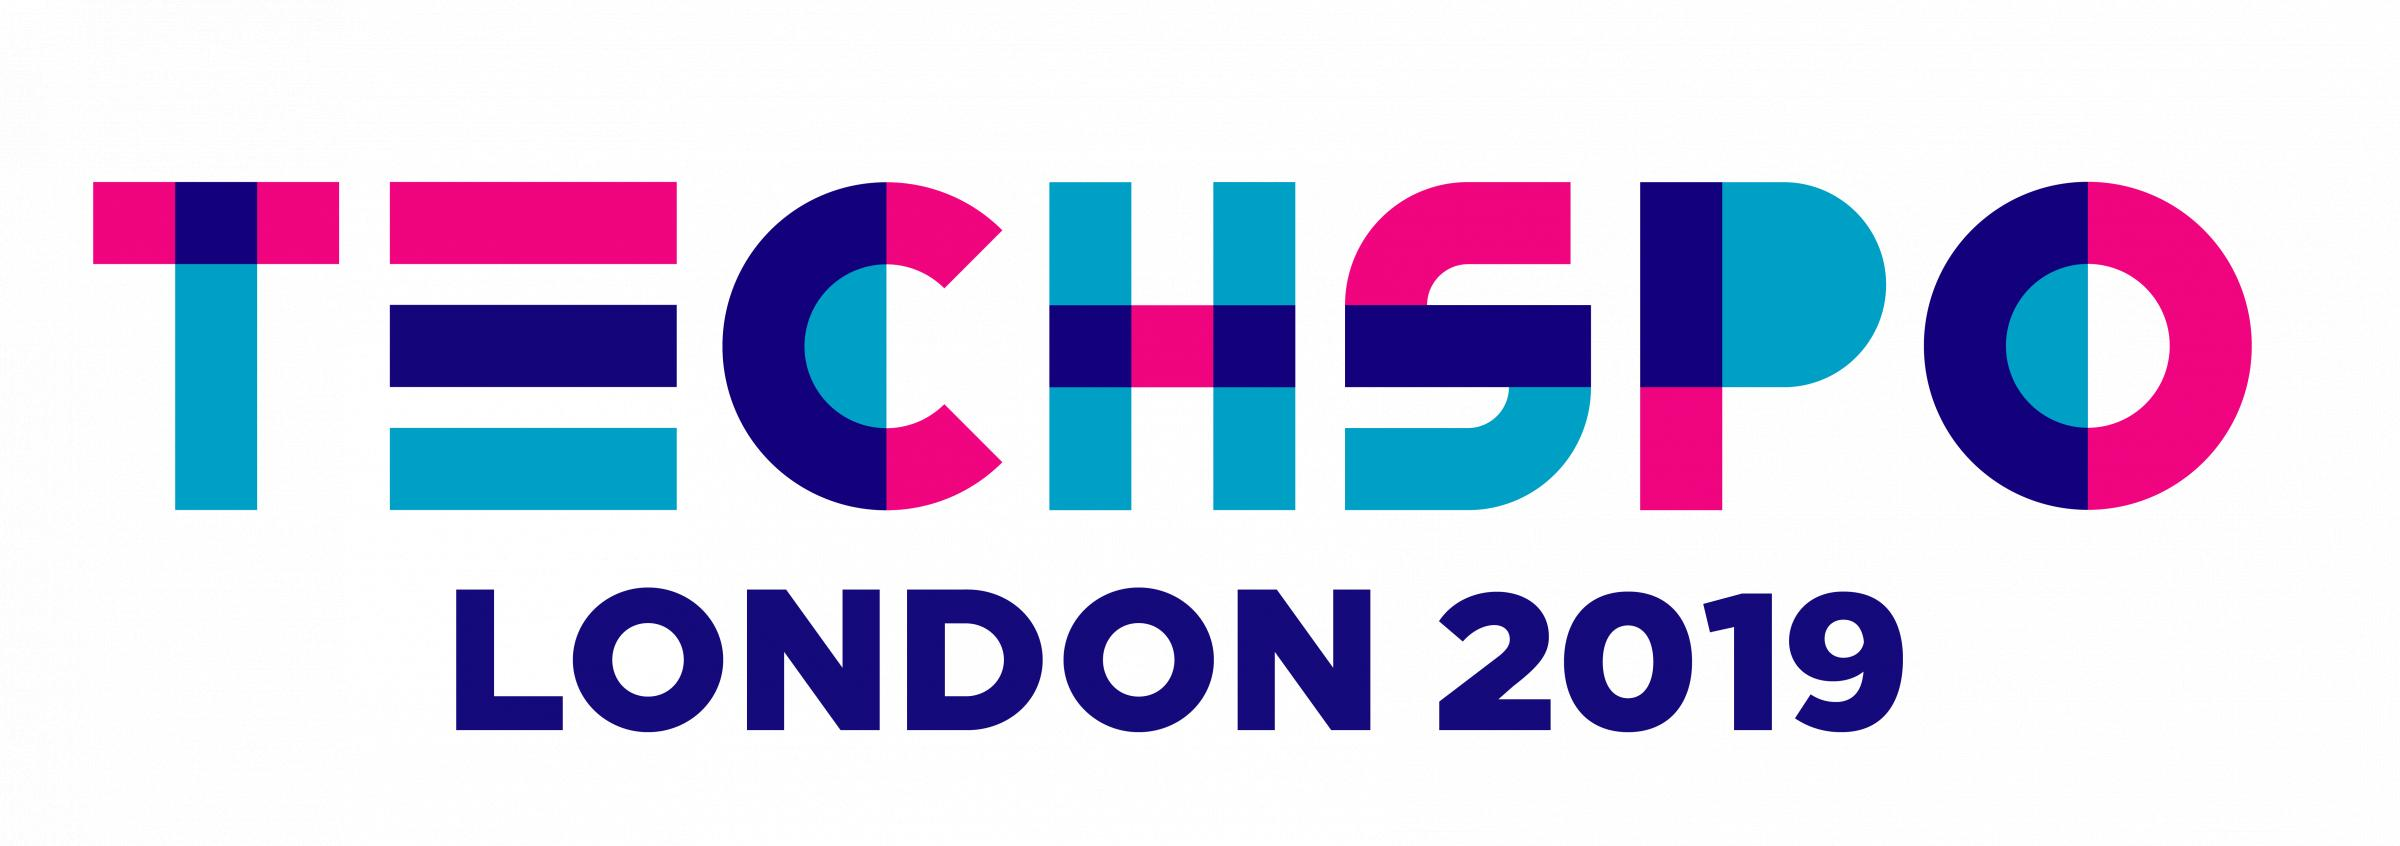 TECHSPO London 2019